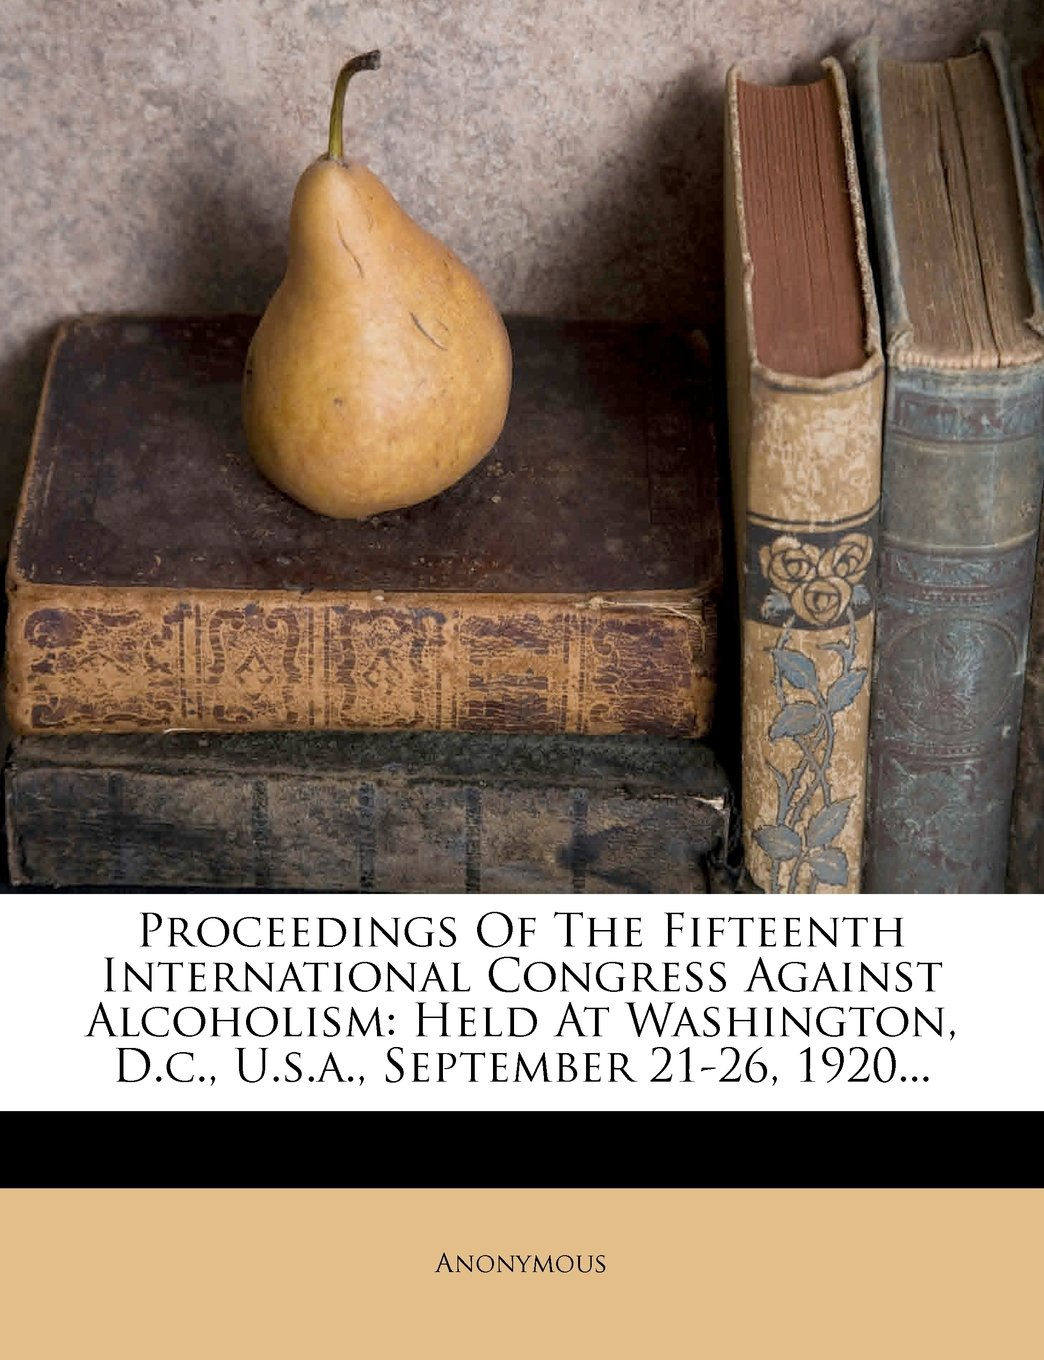 Download Proceedings Of The Fifteenth International Congress Against Alcoholism: Held At Washington, D.c., U.s.a., September 21-26, 1920... ebook